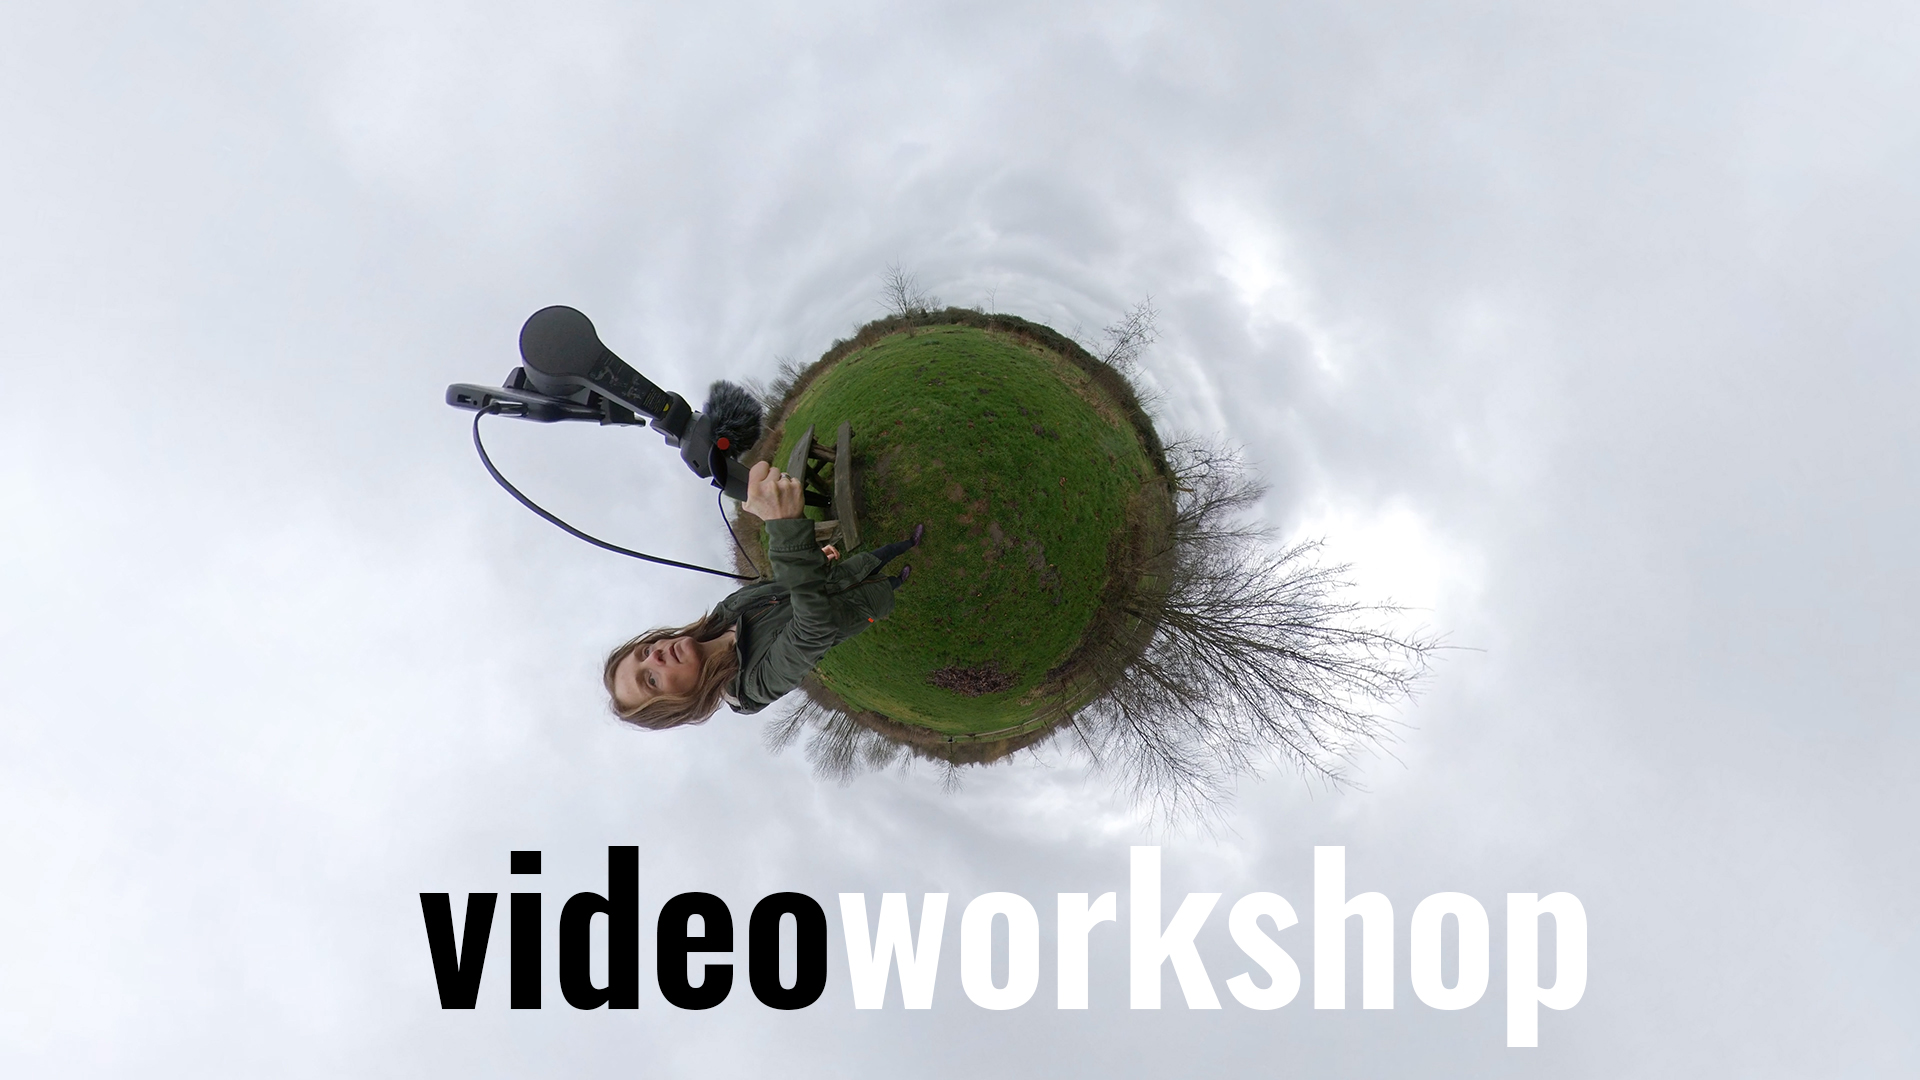 Video workshop